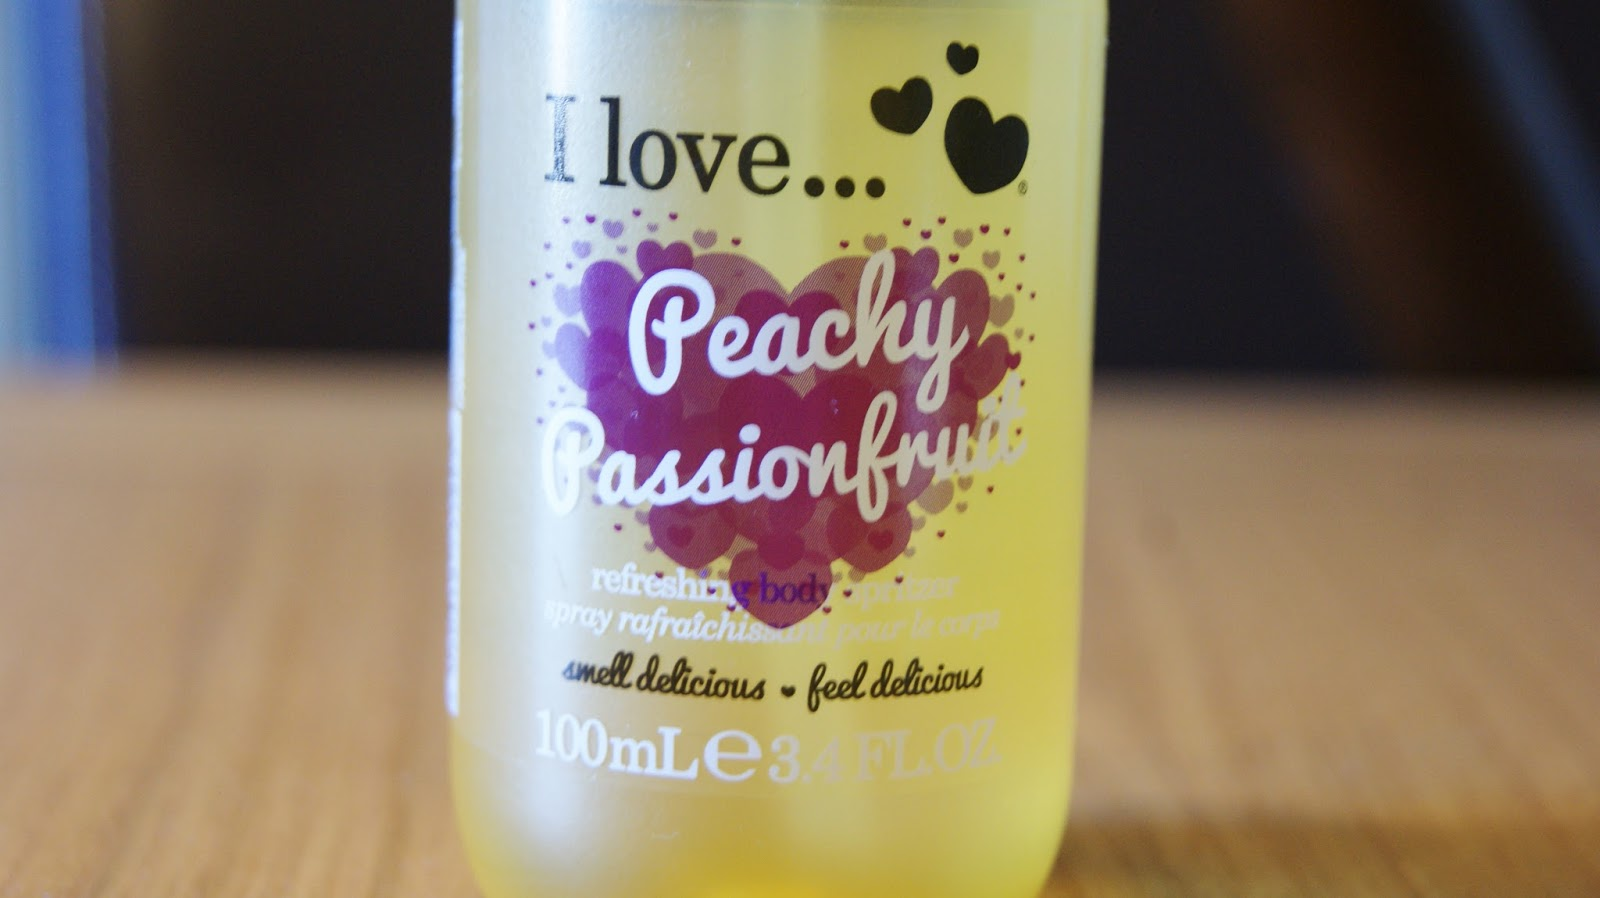 I Love Peachy Passionfruit Body Spritzer